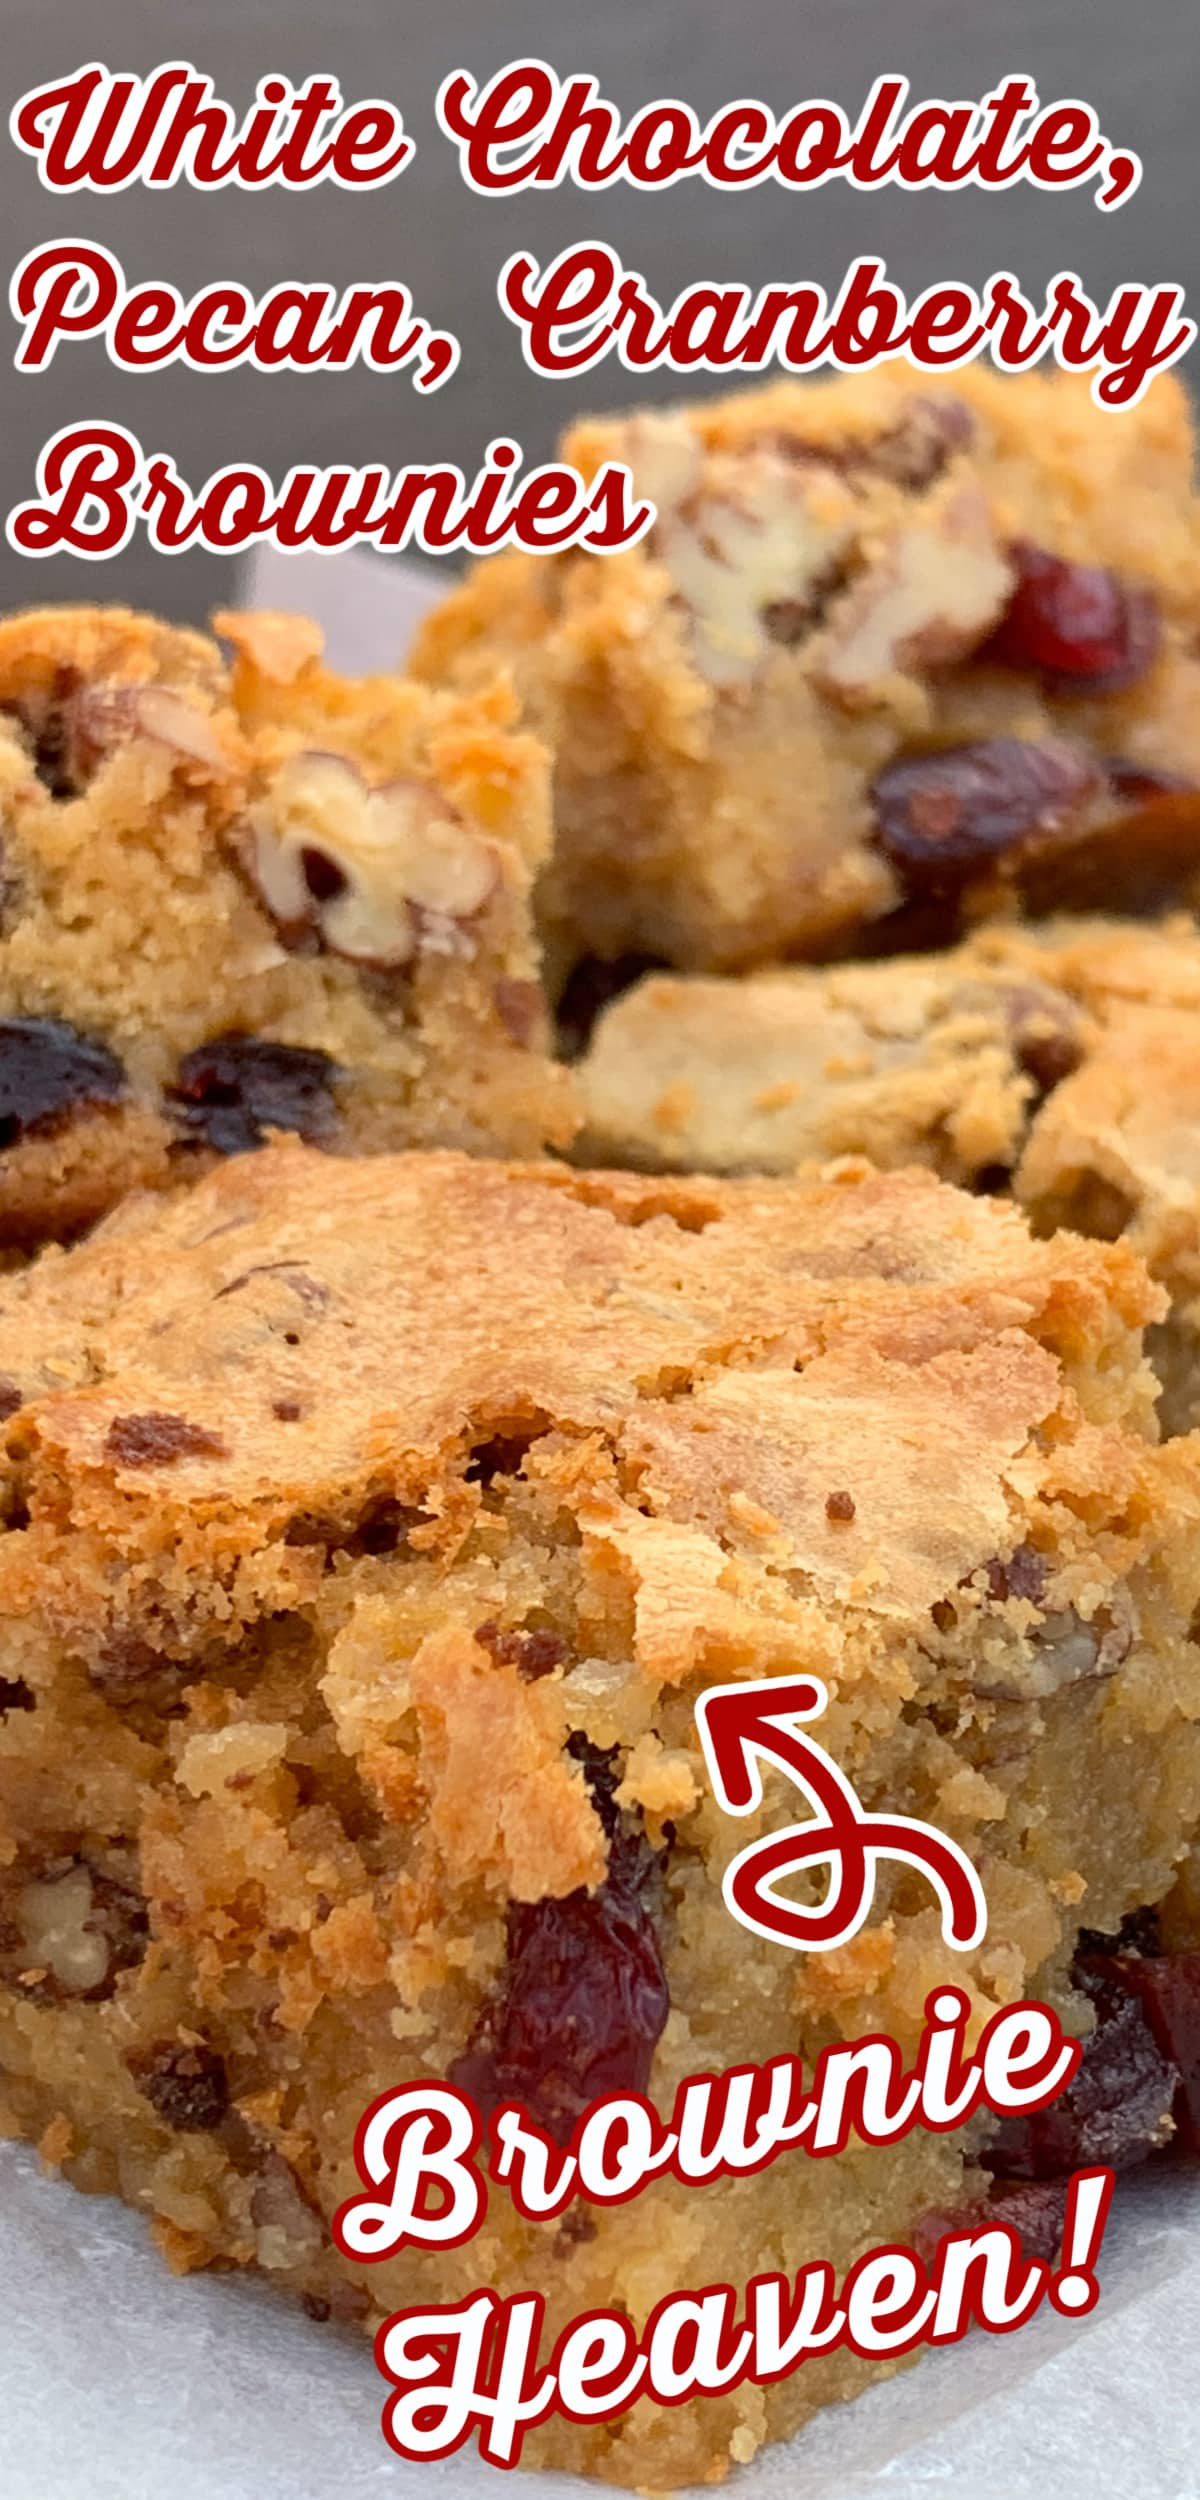 White Chocolate and Pecan Cranberry Brownies (Blondies). Deliciously gooey and decadent white chocolate brownies with pecan nuts and cranberries for a festive twist. Crispy outer layer, dense and fudge inside, just as a brownie should be.